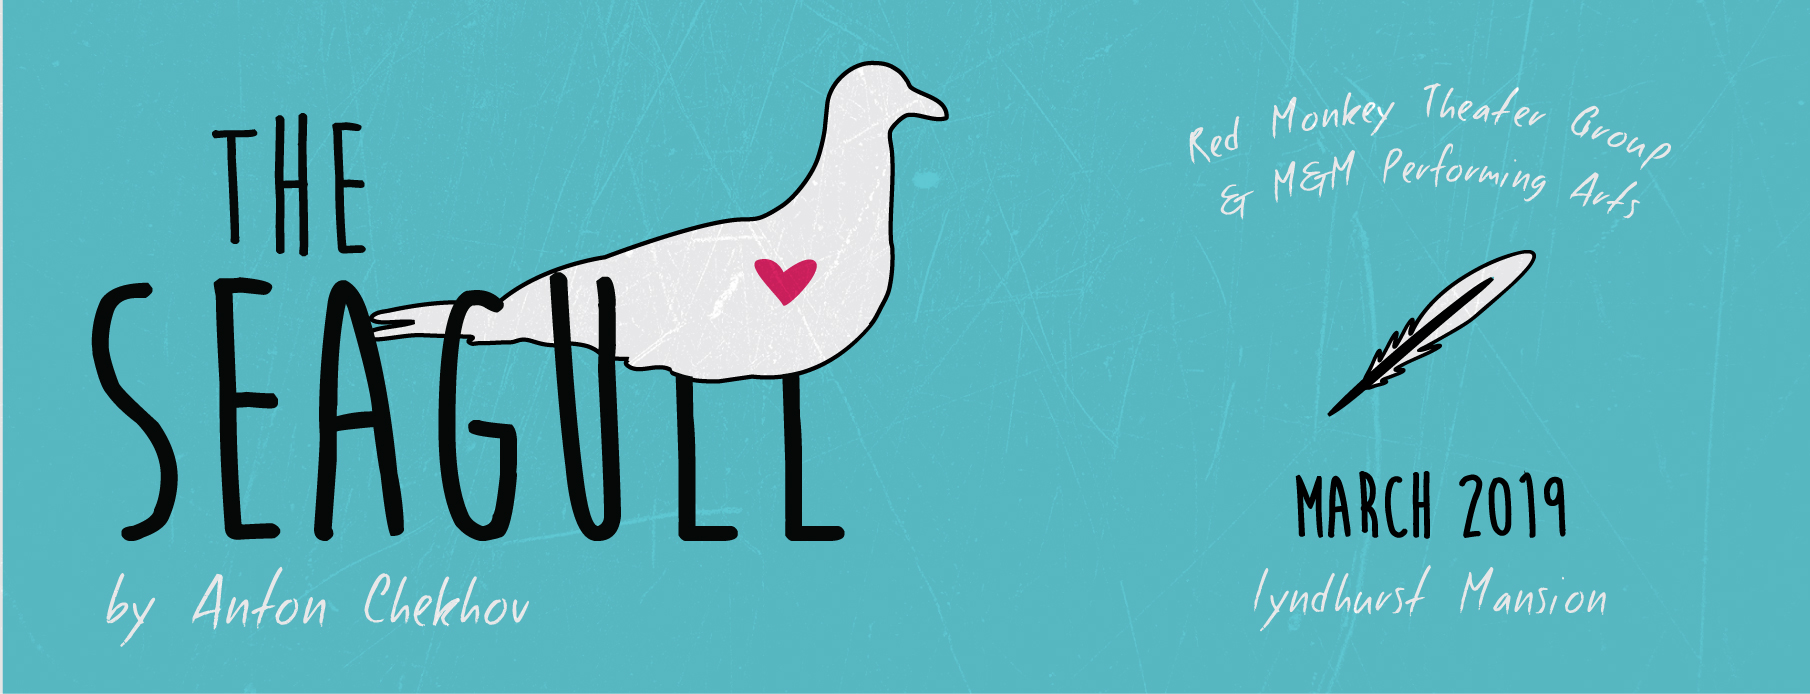 The-Seagull-Program-FB-Cover-v1-05